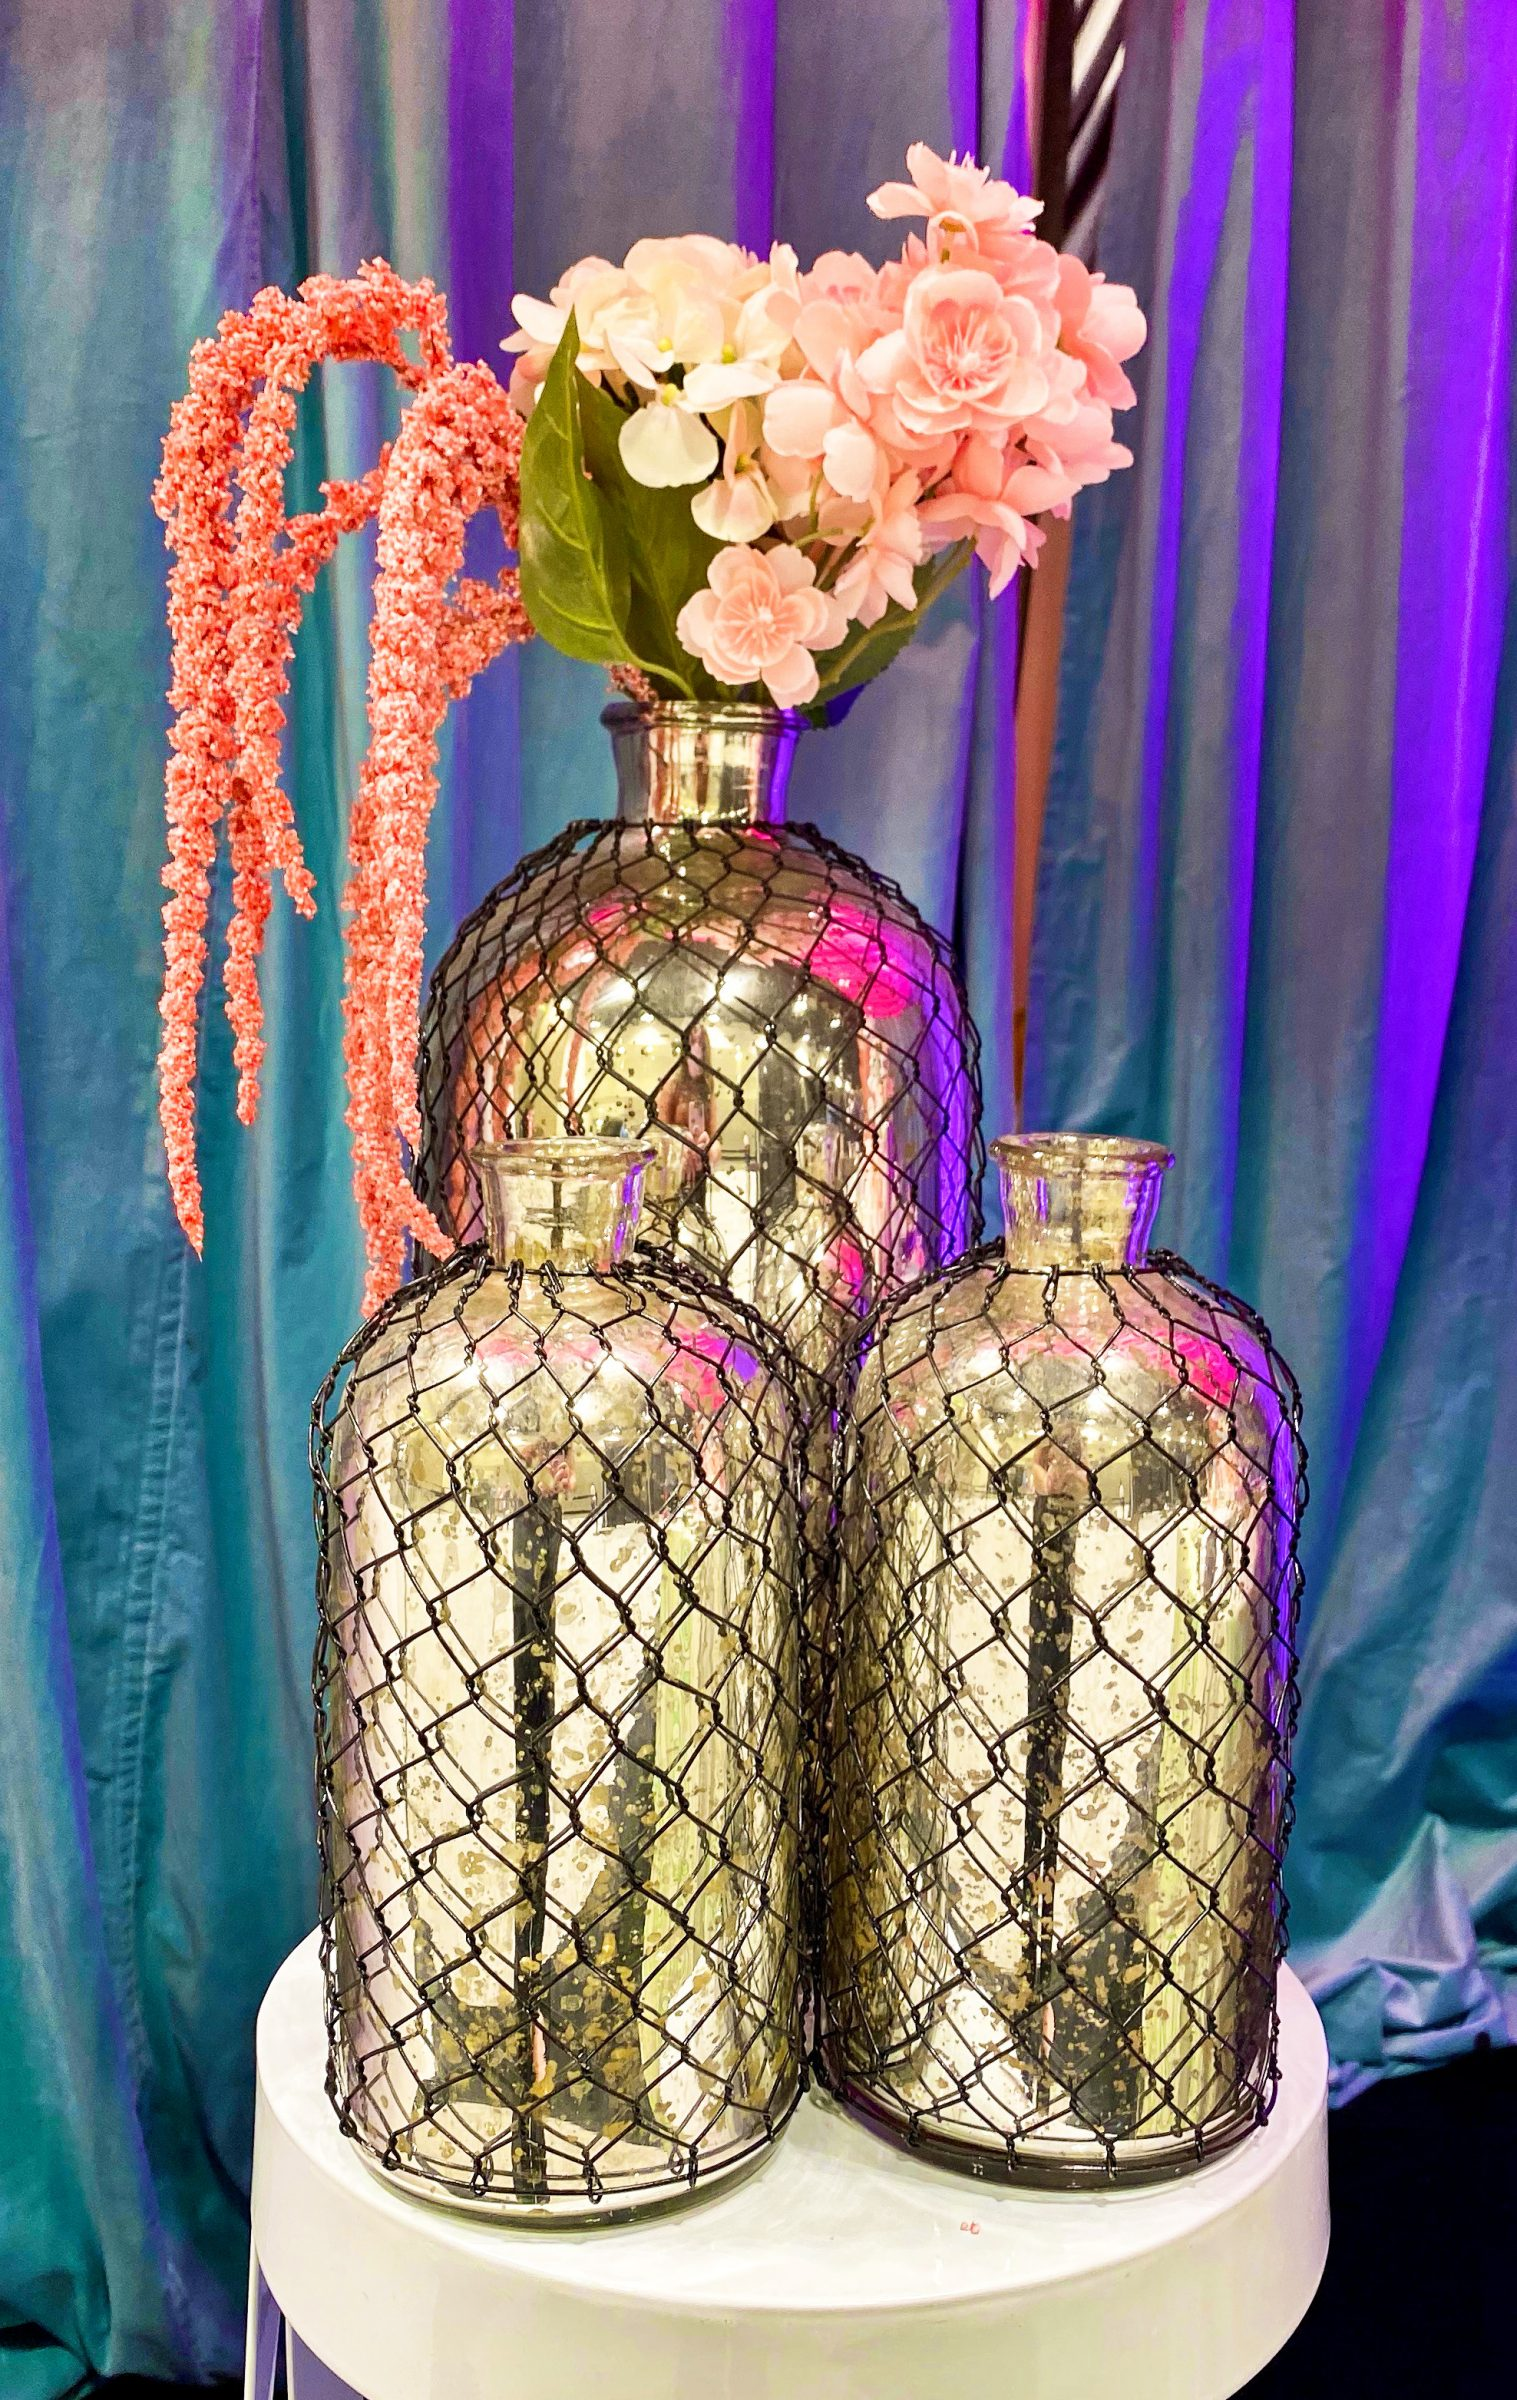 Tall gold vases in black cages with pink and blue flowers